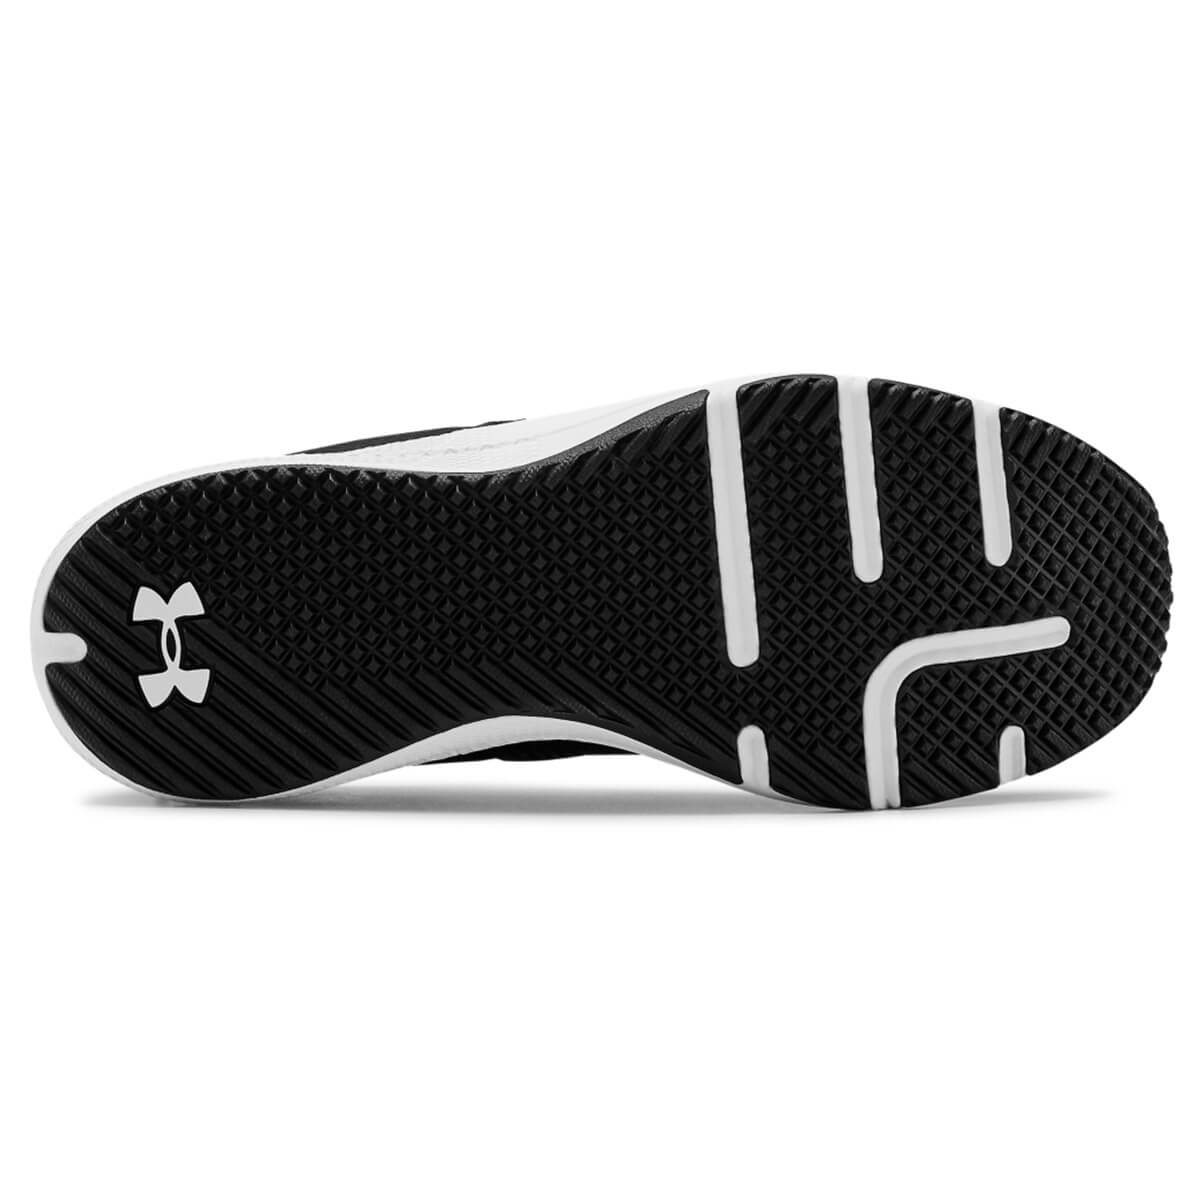 Under Armour Mens 2020 Charged Engage Lightweight Breathable Mesh Running Shoes